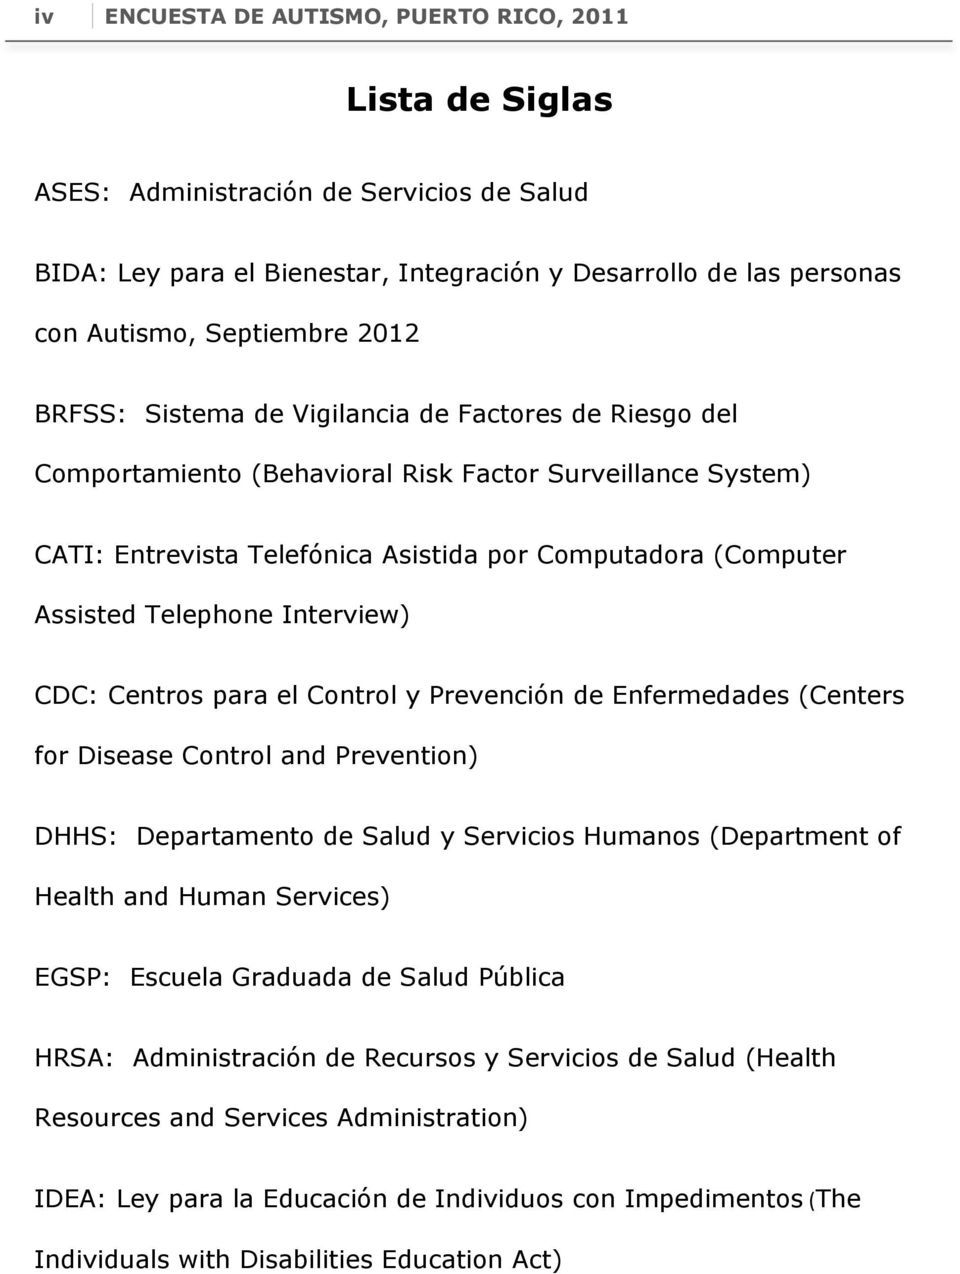 Interview) CDC: Centros para el Control y Prevención de Enfermedades (Centers for Disease Control and Prevention) DHHS: Departamento de Salud y Servicios Humanos (Department of Health and Human